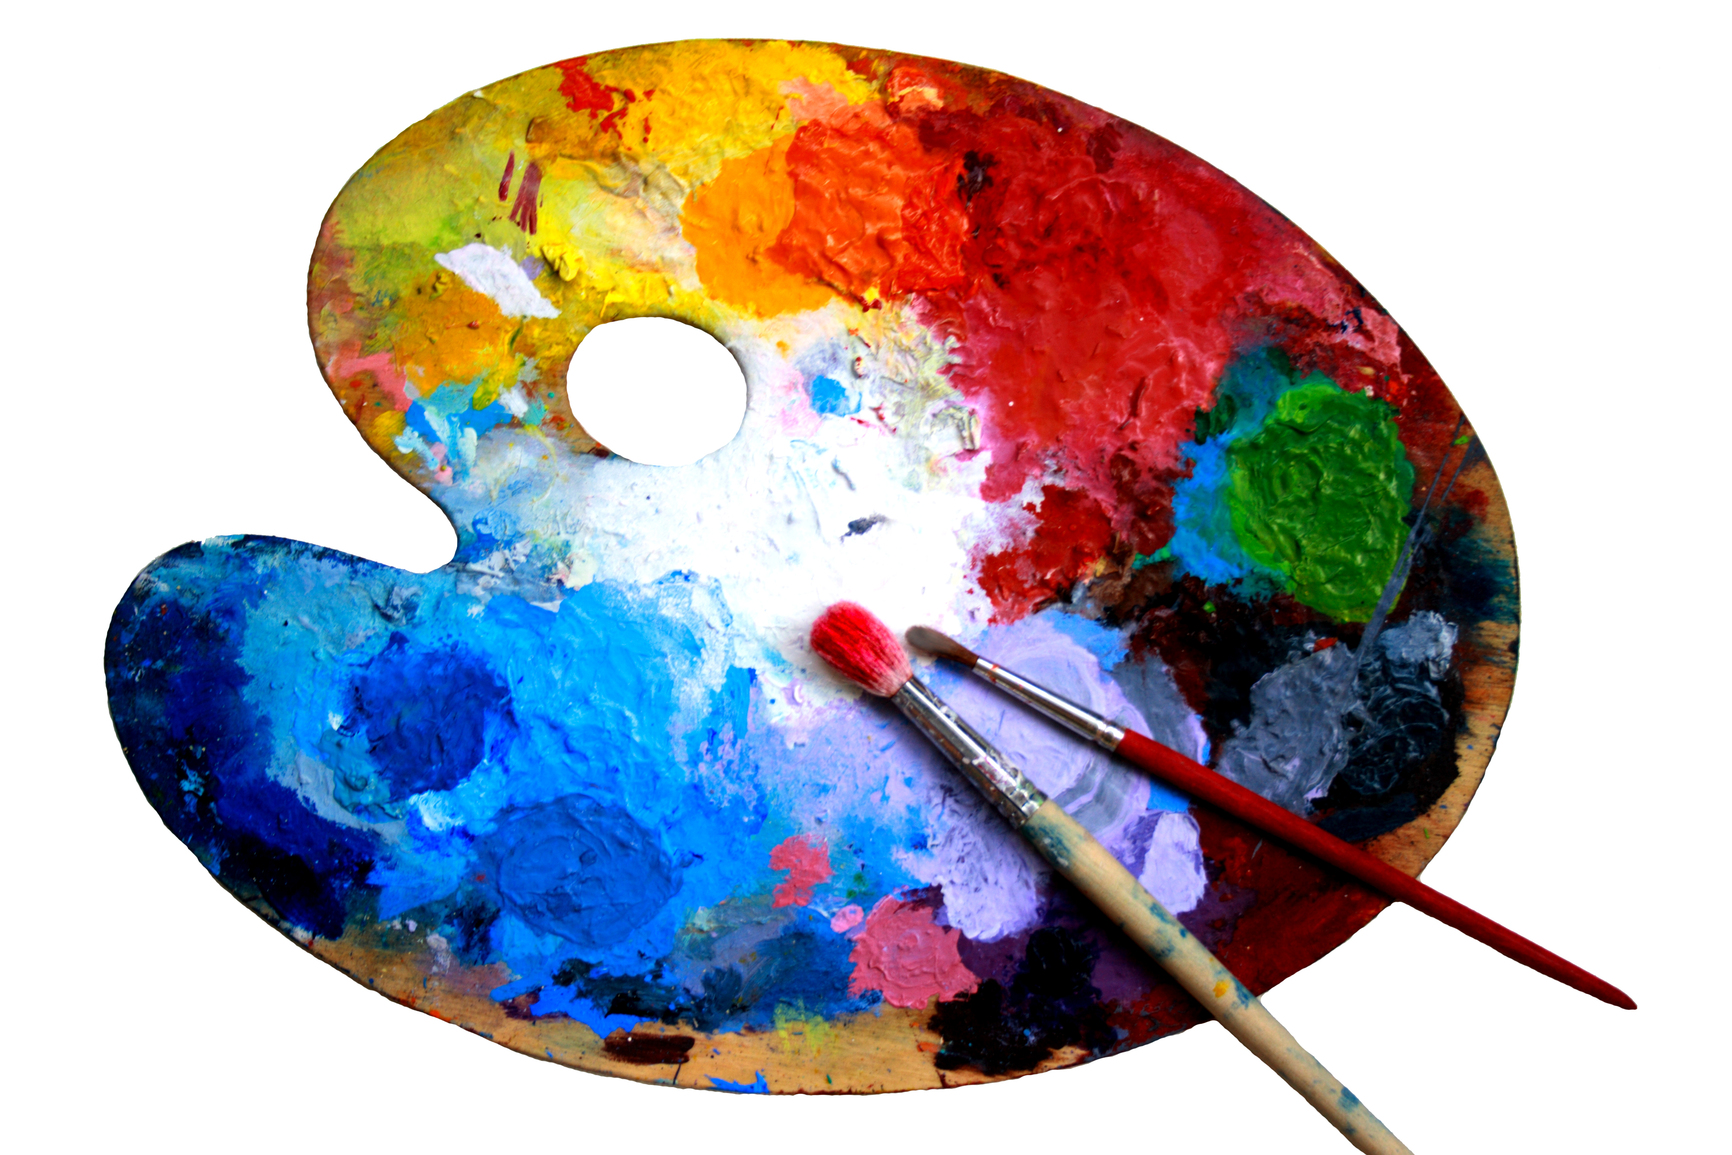 Oval art palette with paints and two brushes on a white back-ground